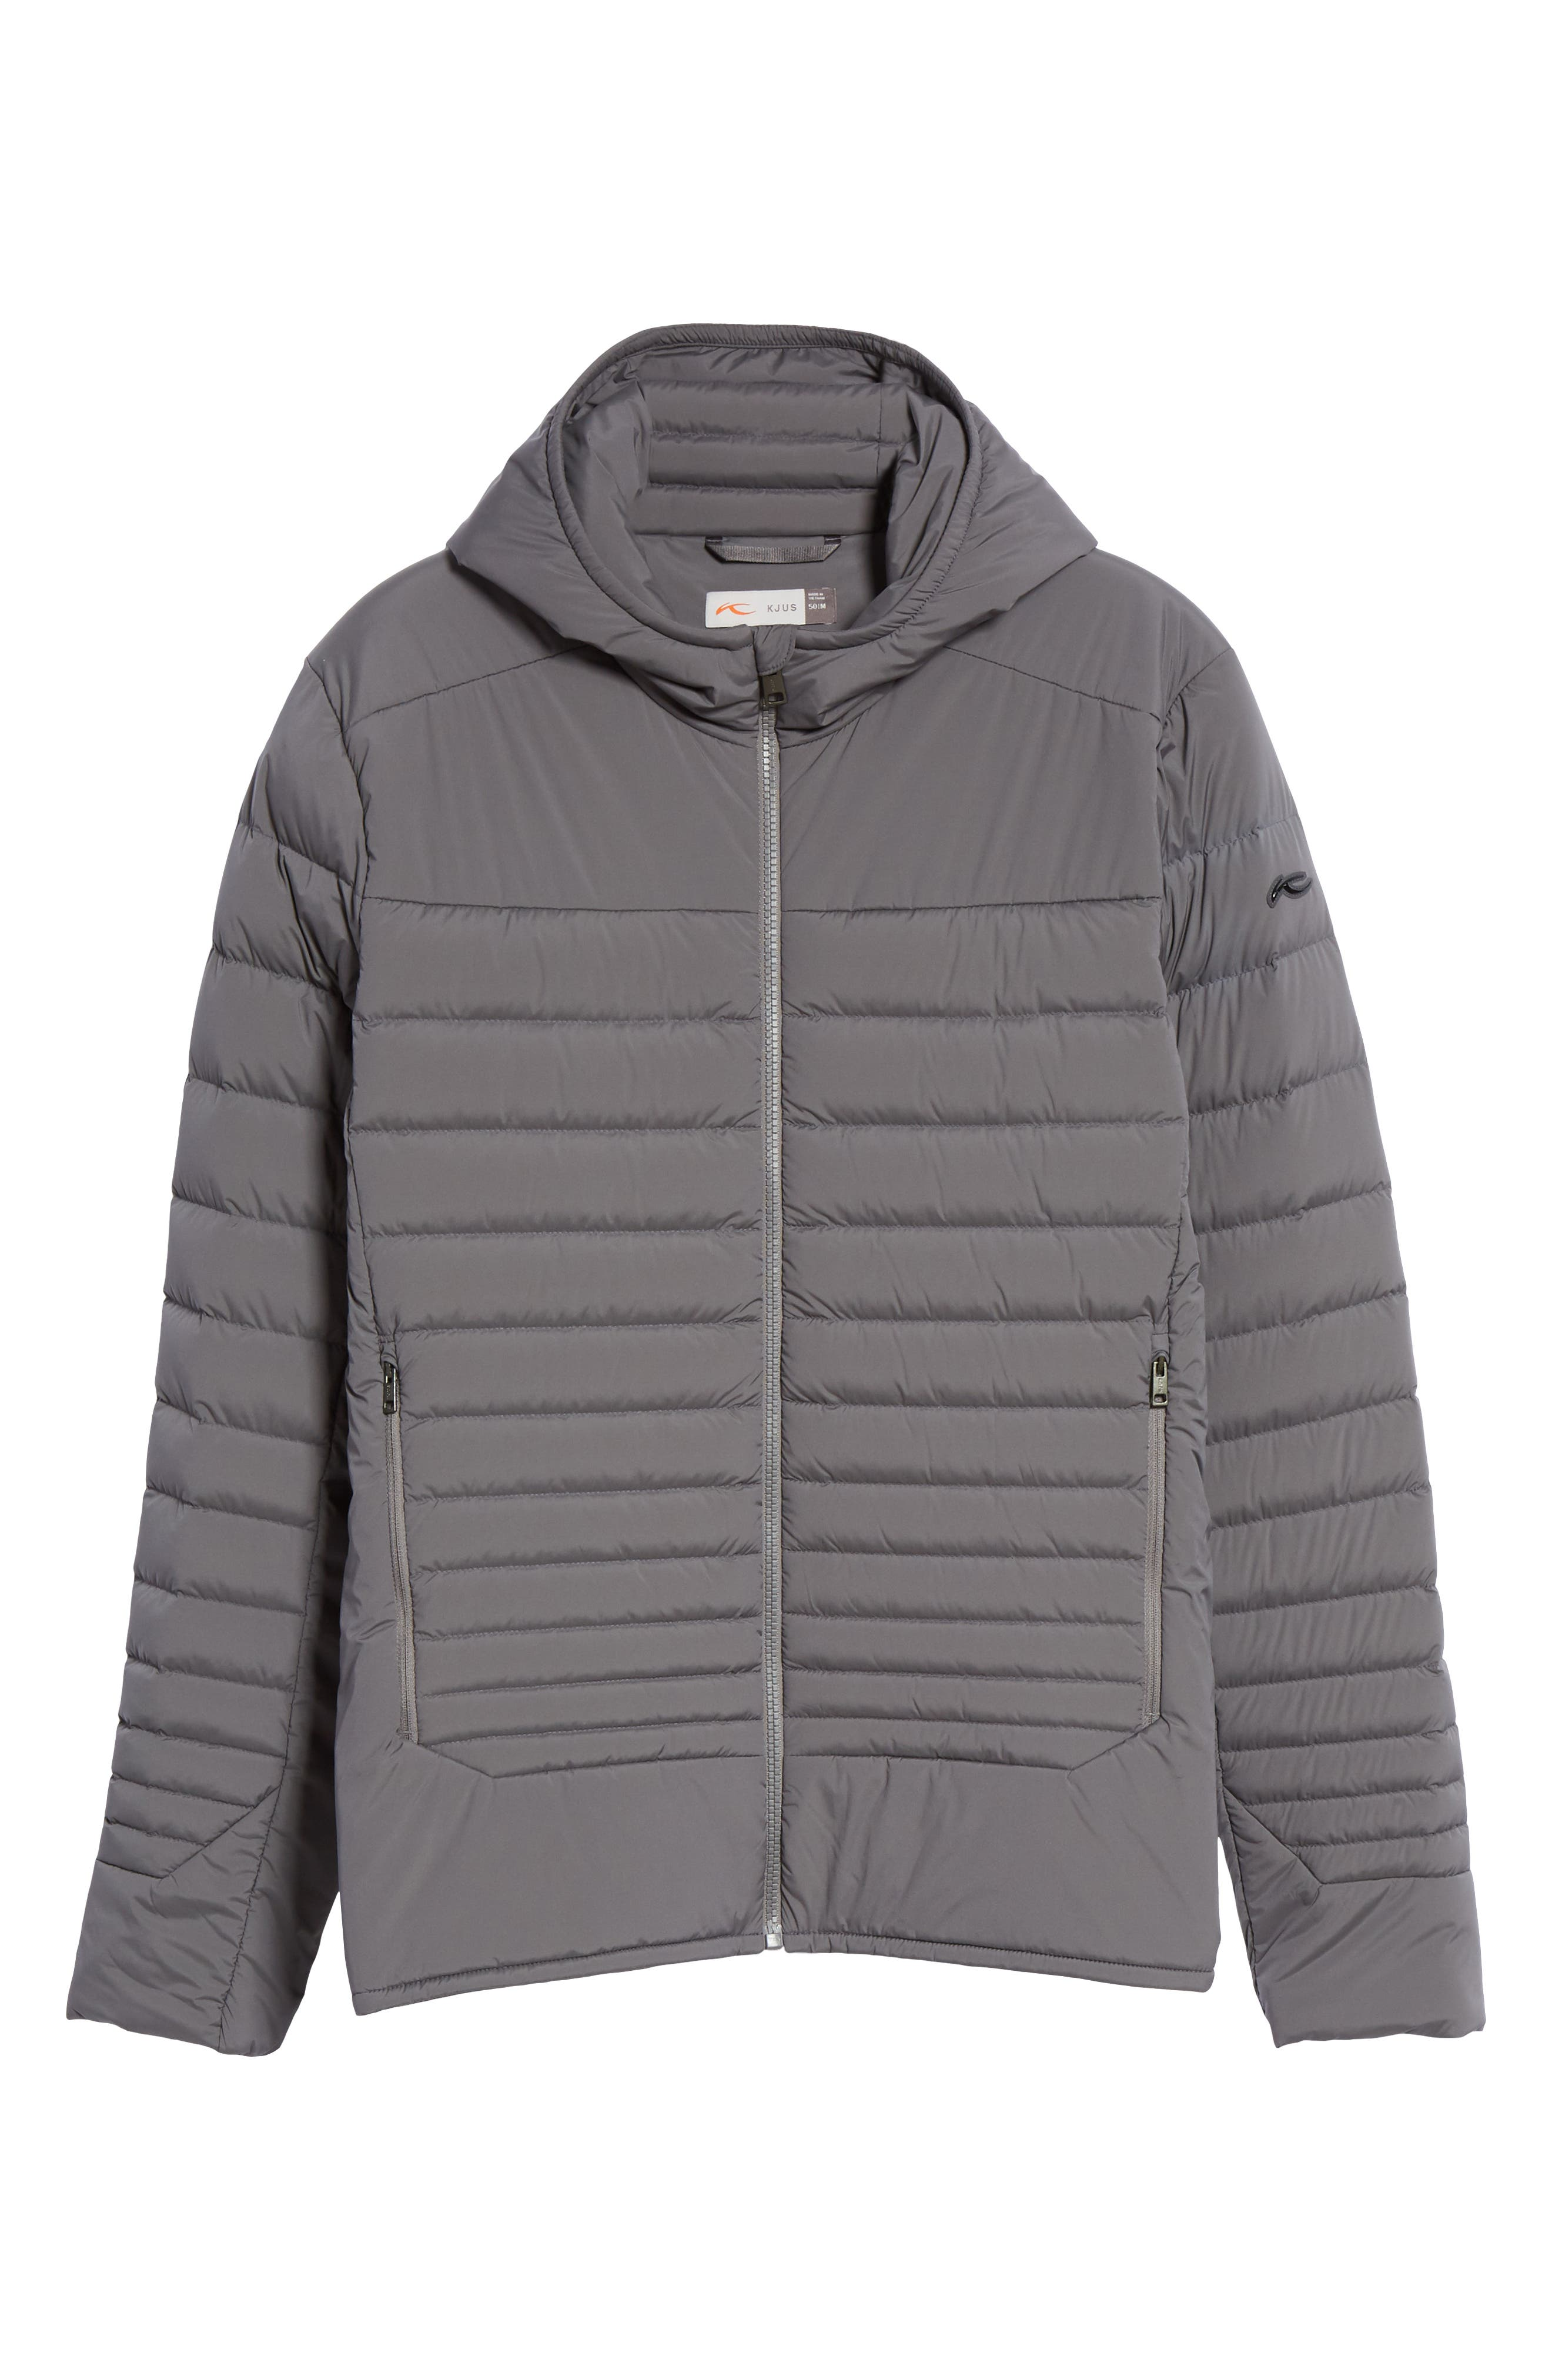 Blackcomb Stretch Hooded Men's Down Fill Jacket,                             Main thumbnail 1, color,                             STEEL GREY